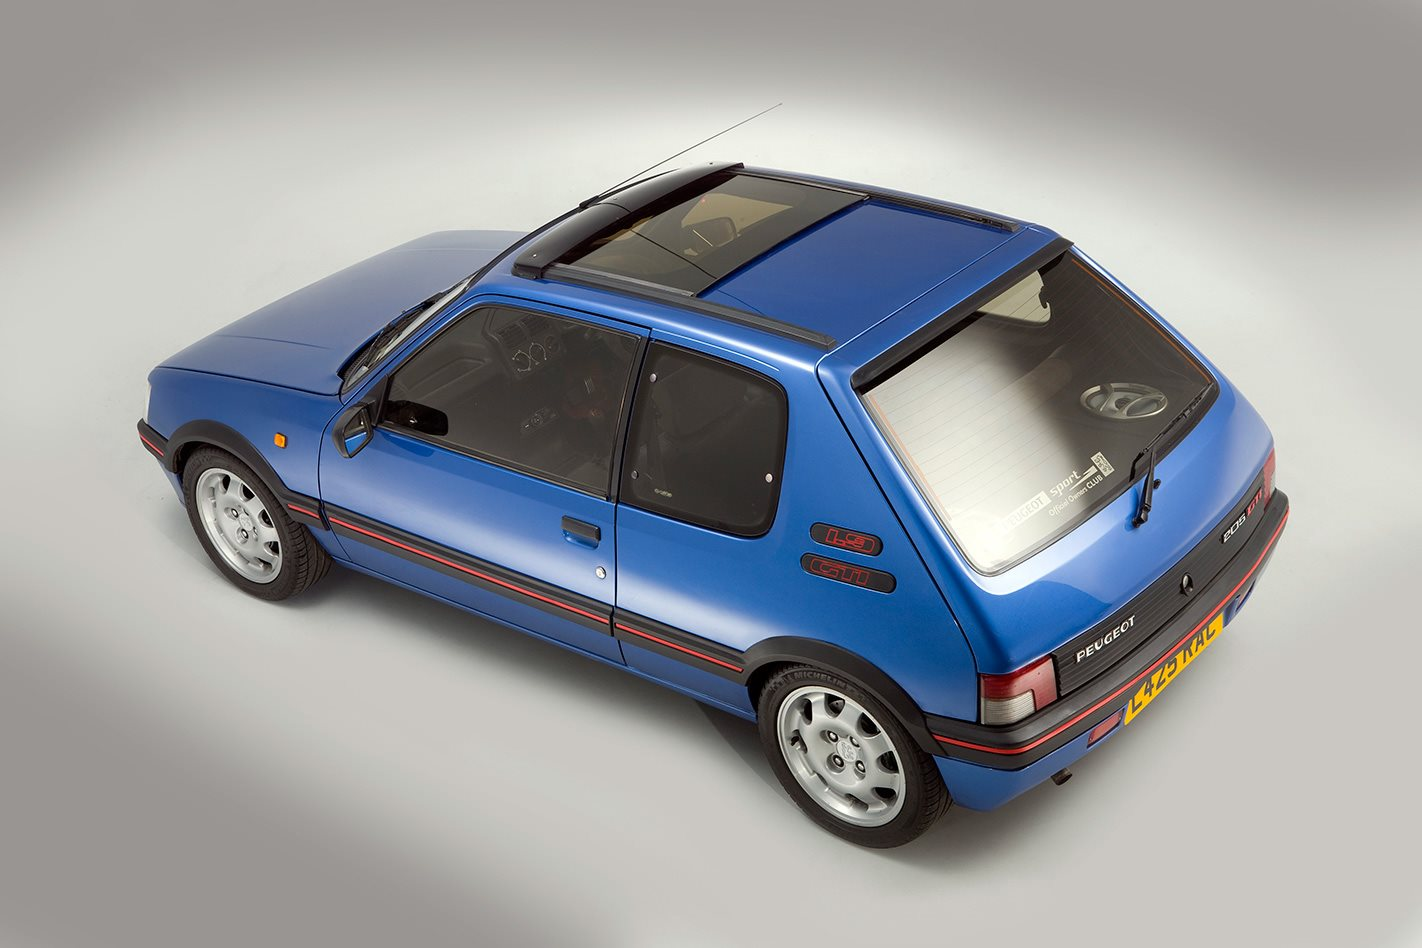 1987 Peugeot 205 GTi sunroof